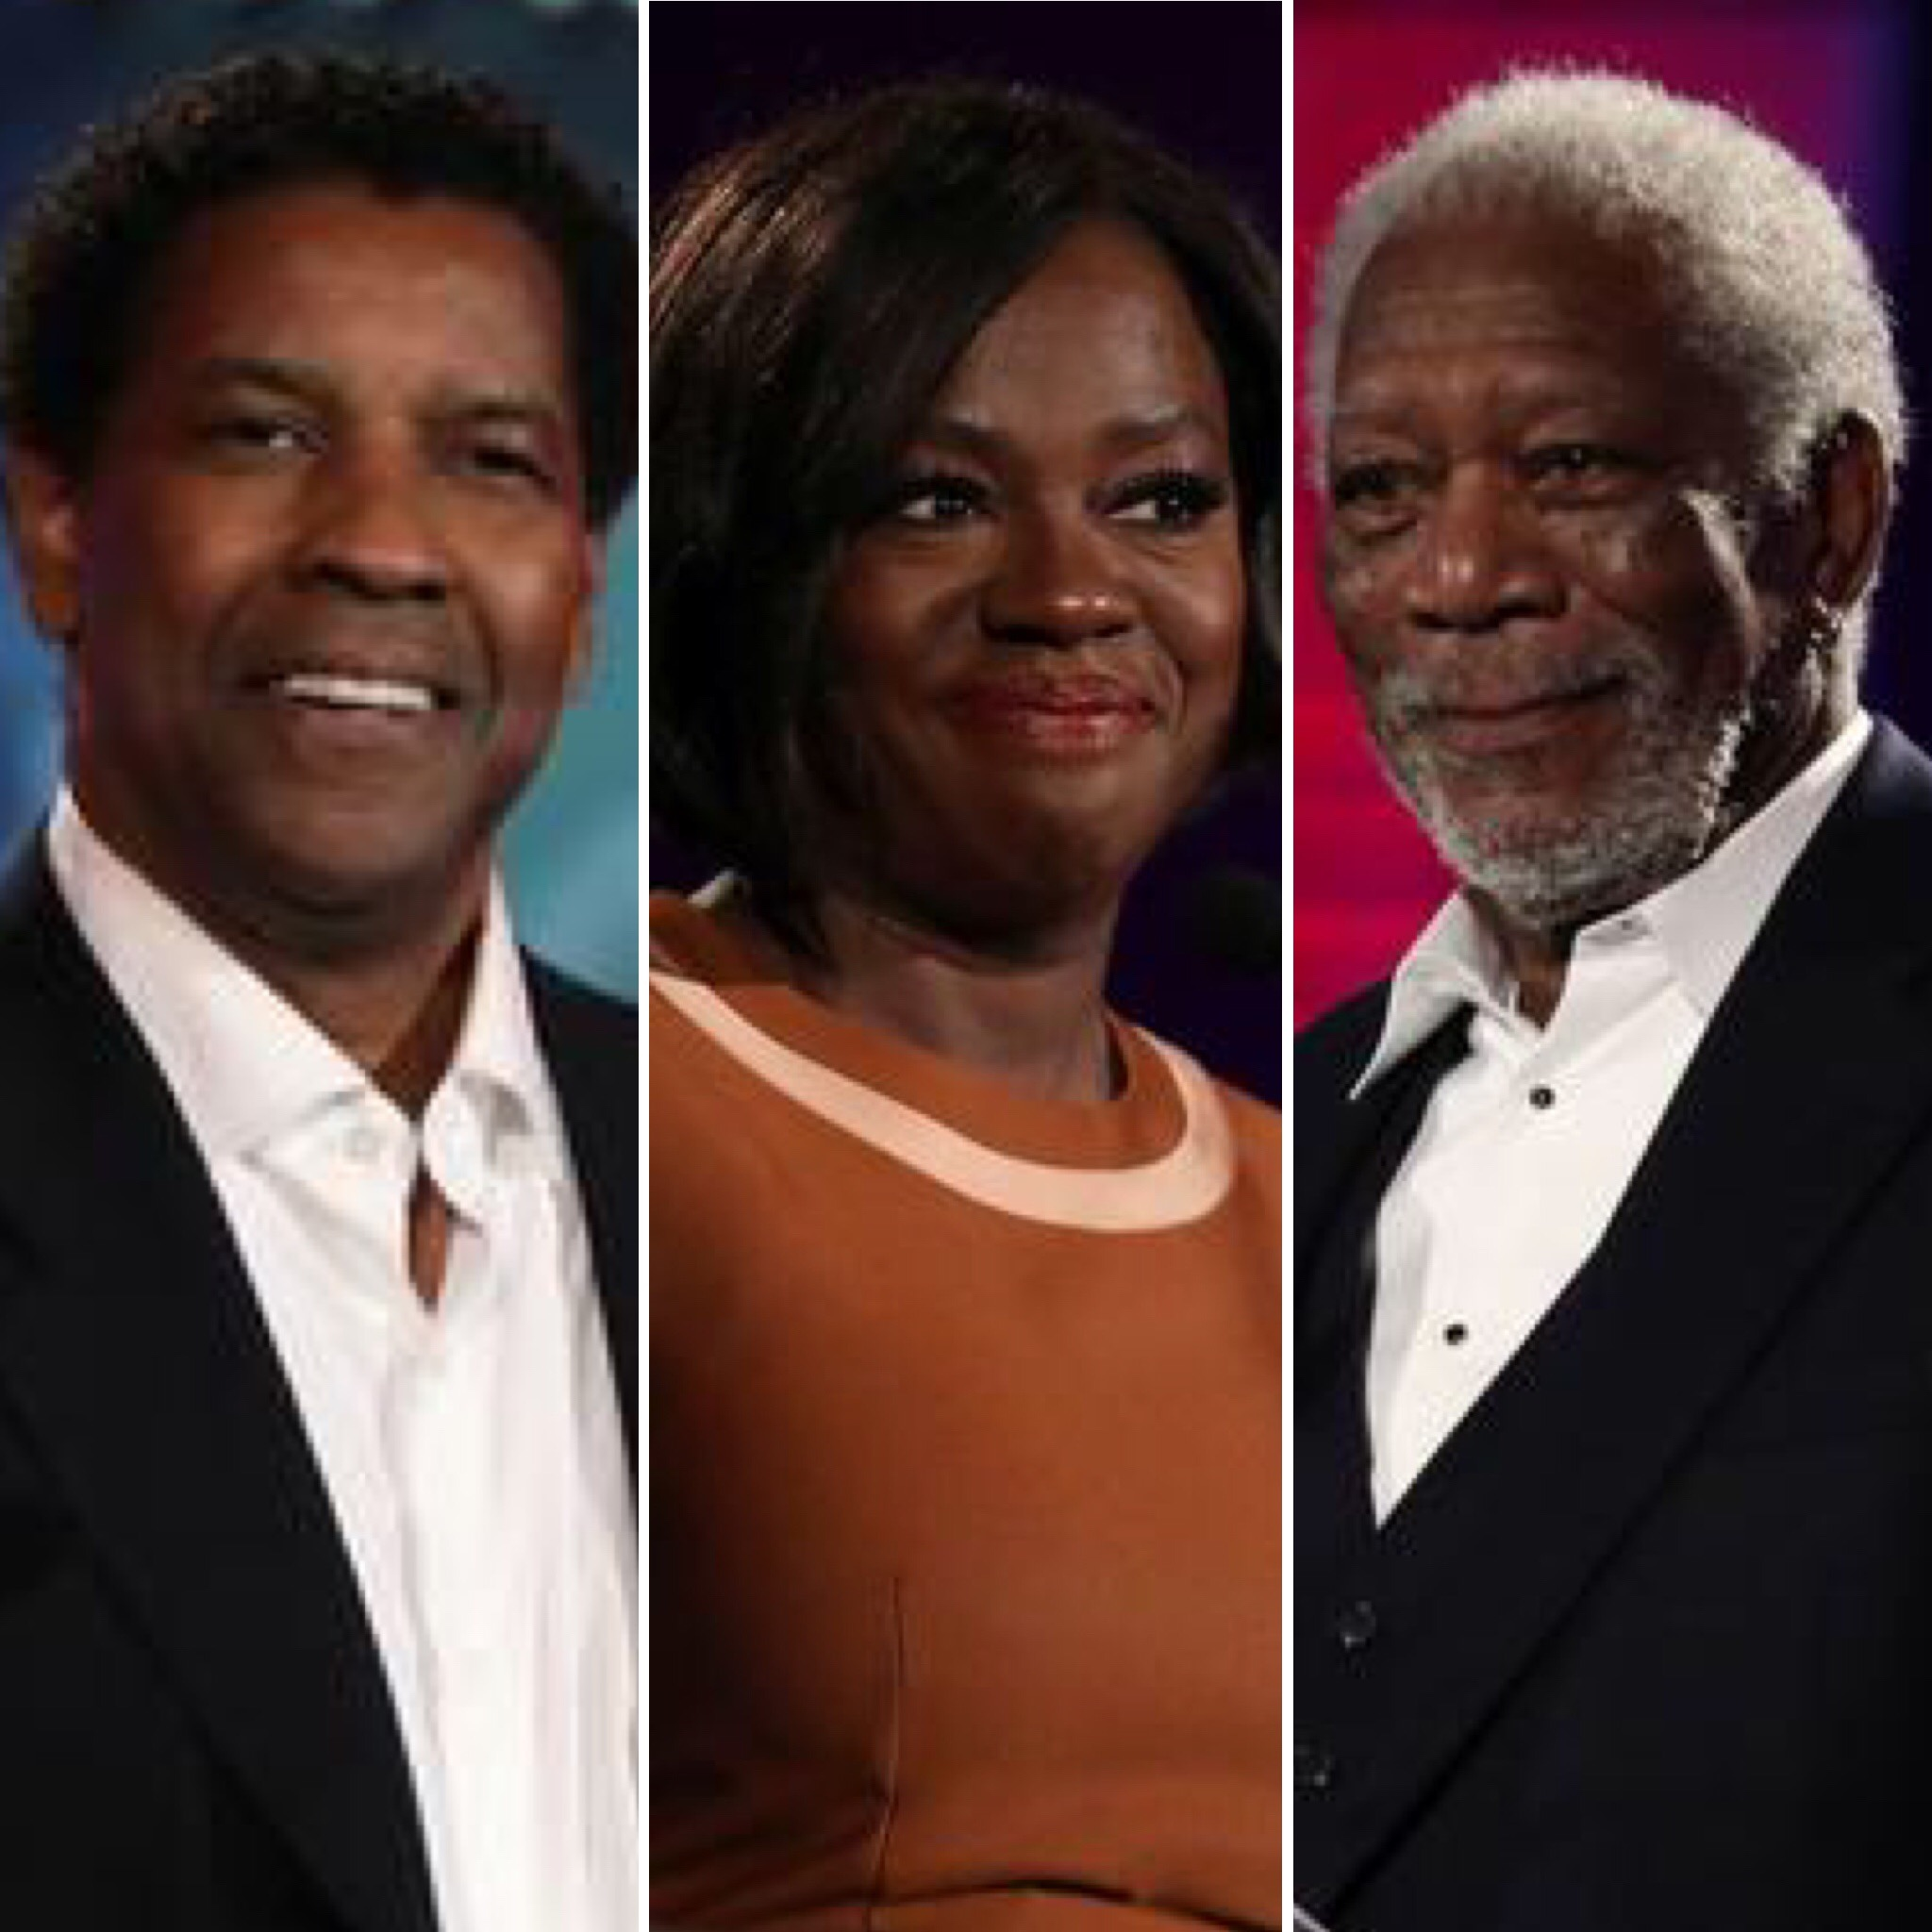 (L-R) Denzel Washington, Viola Davis and Morgan Freeman at the AARP Movies for Grownups Awards in Beverly Hills (Feb 7, 2017)